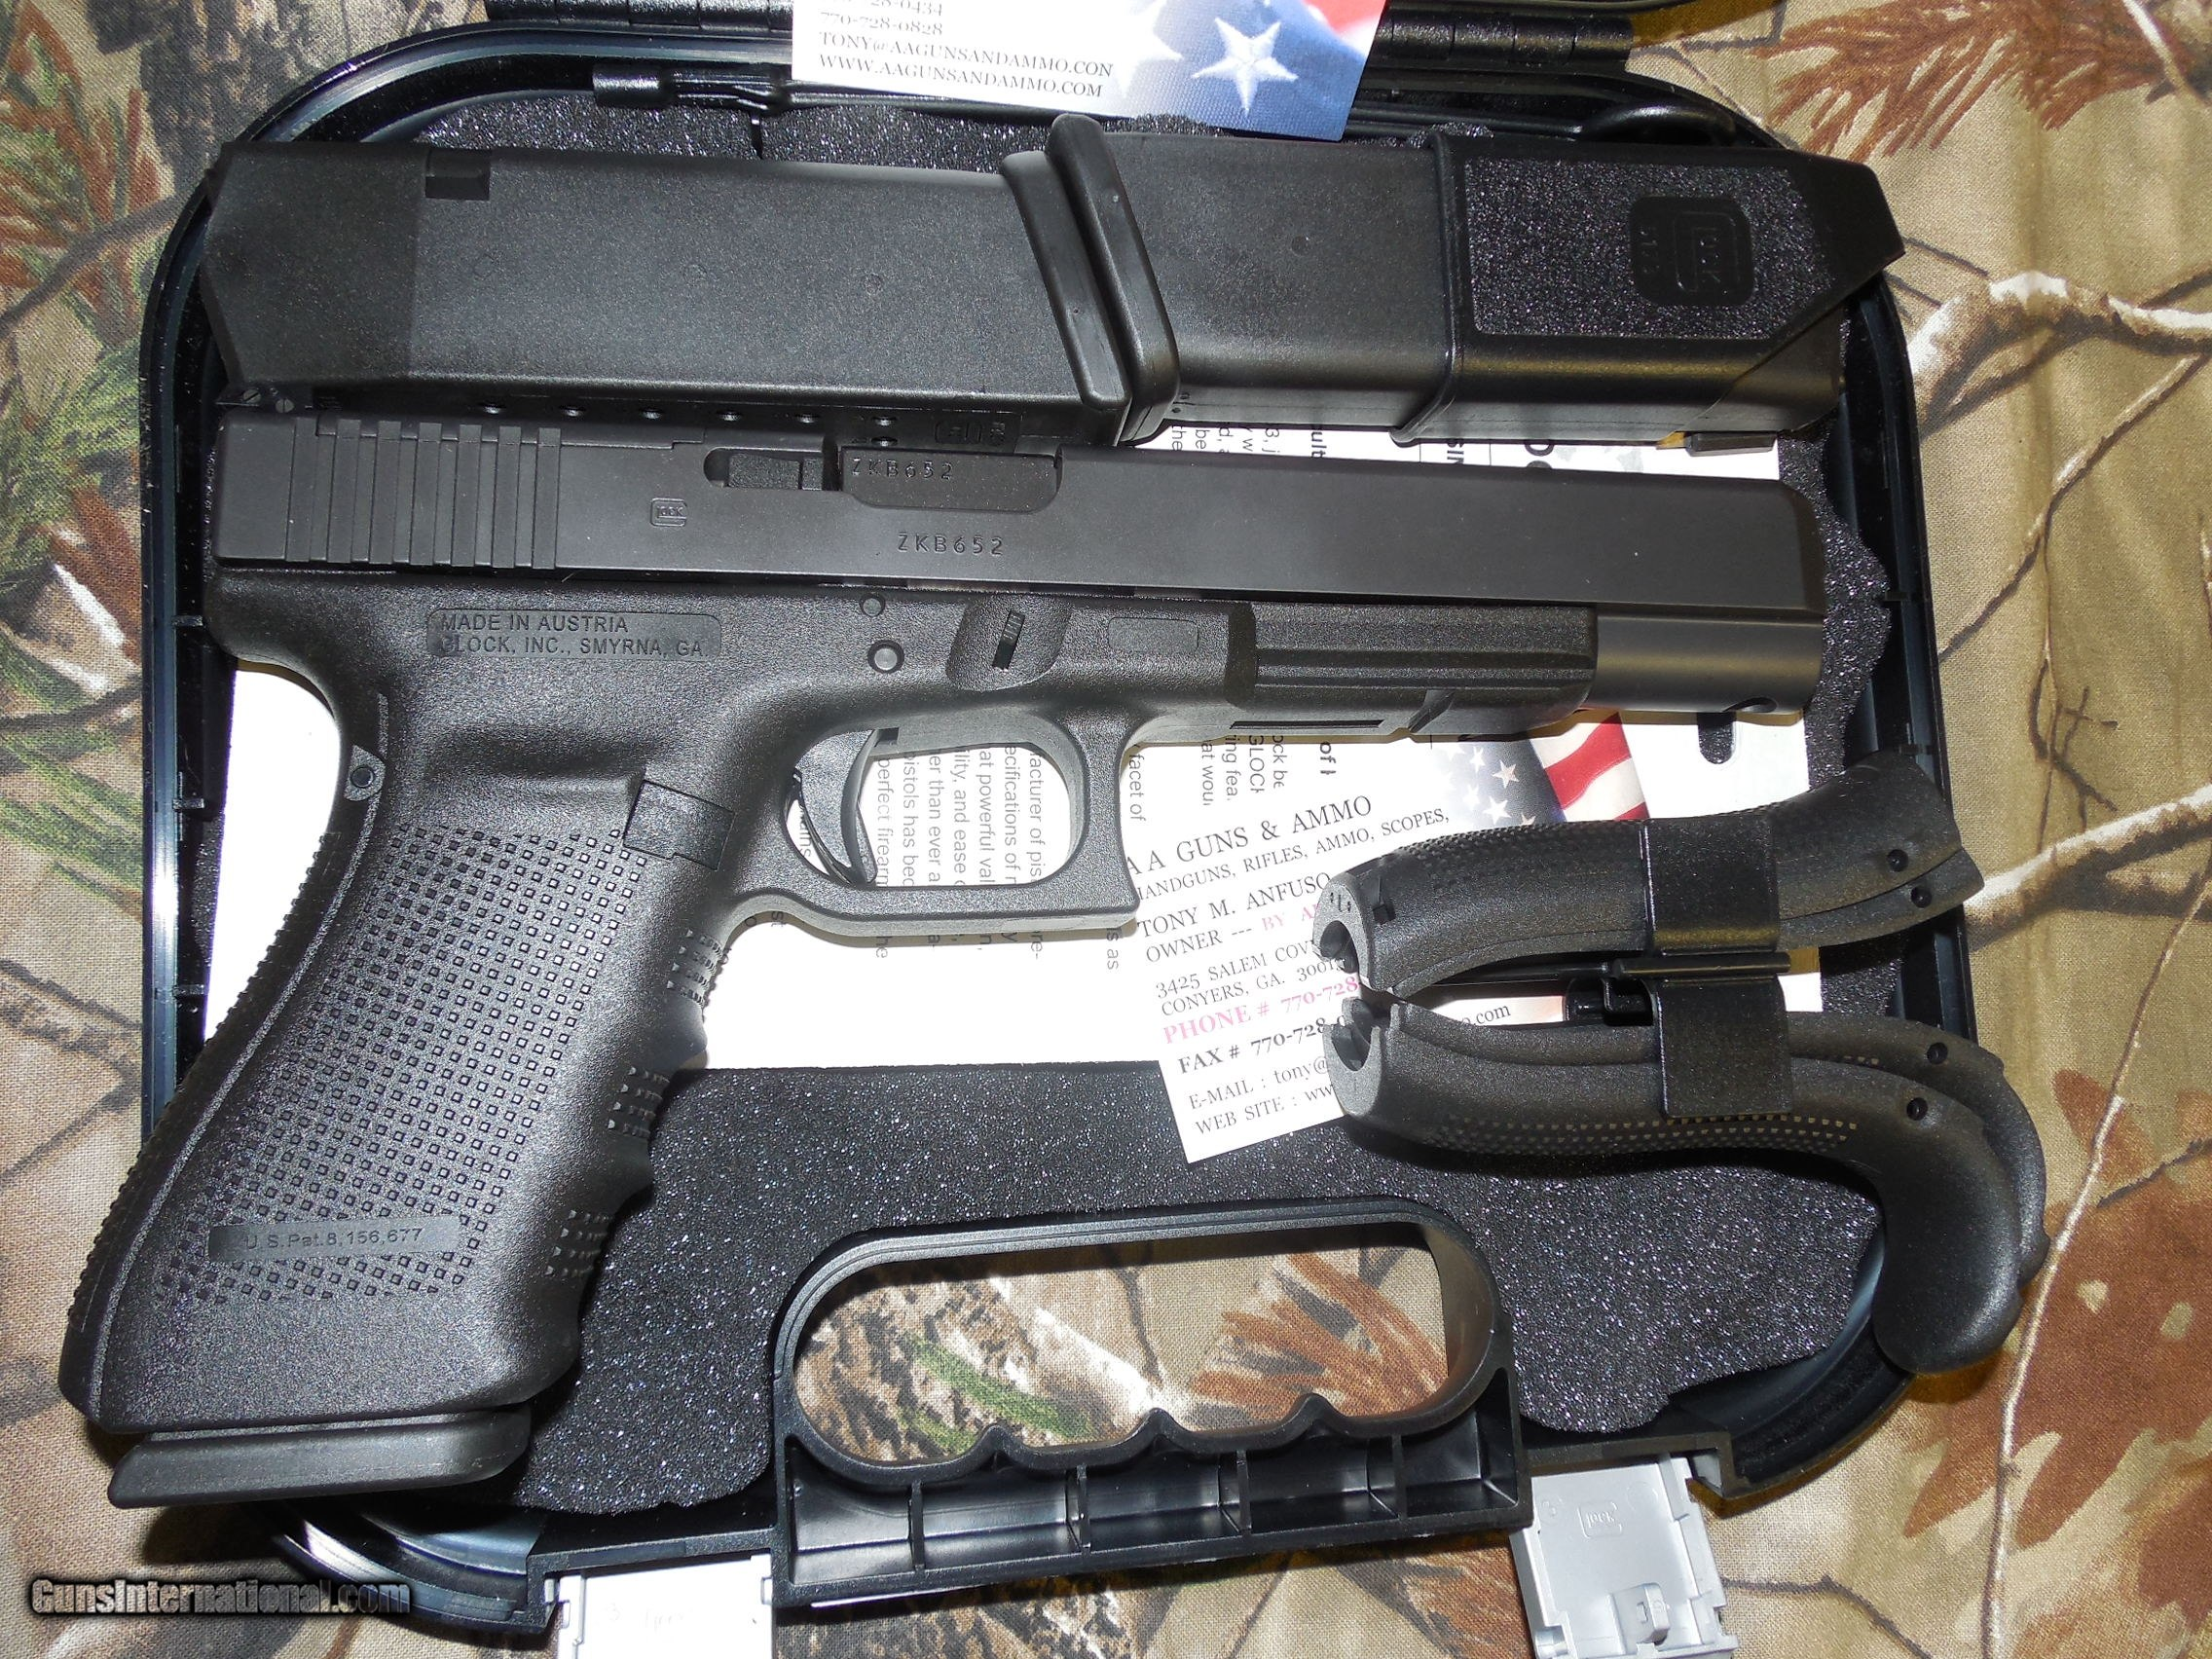 GLOCK G-40 M O S  GEN - 4, READY FOR OPTIC SIGHTS, 10 - MM, HUNTER